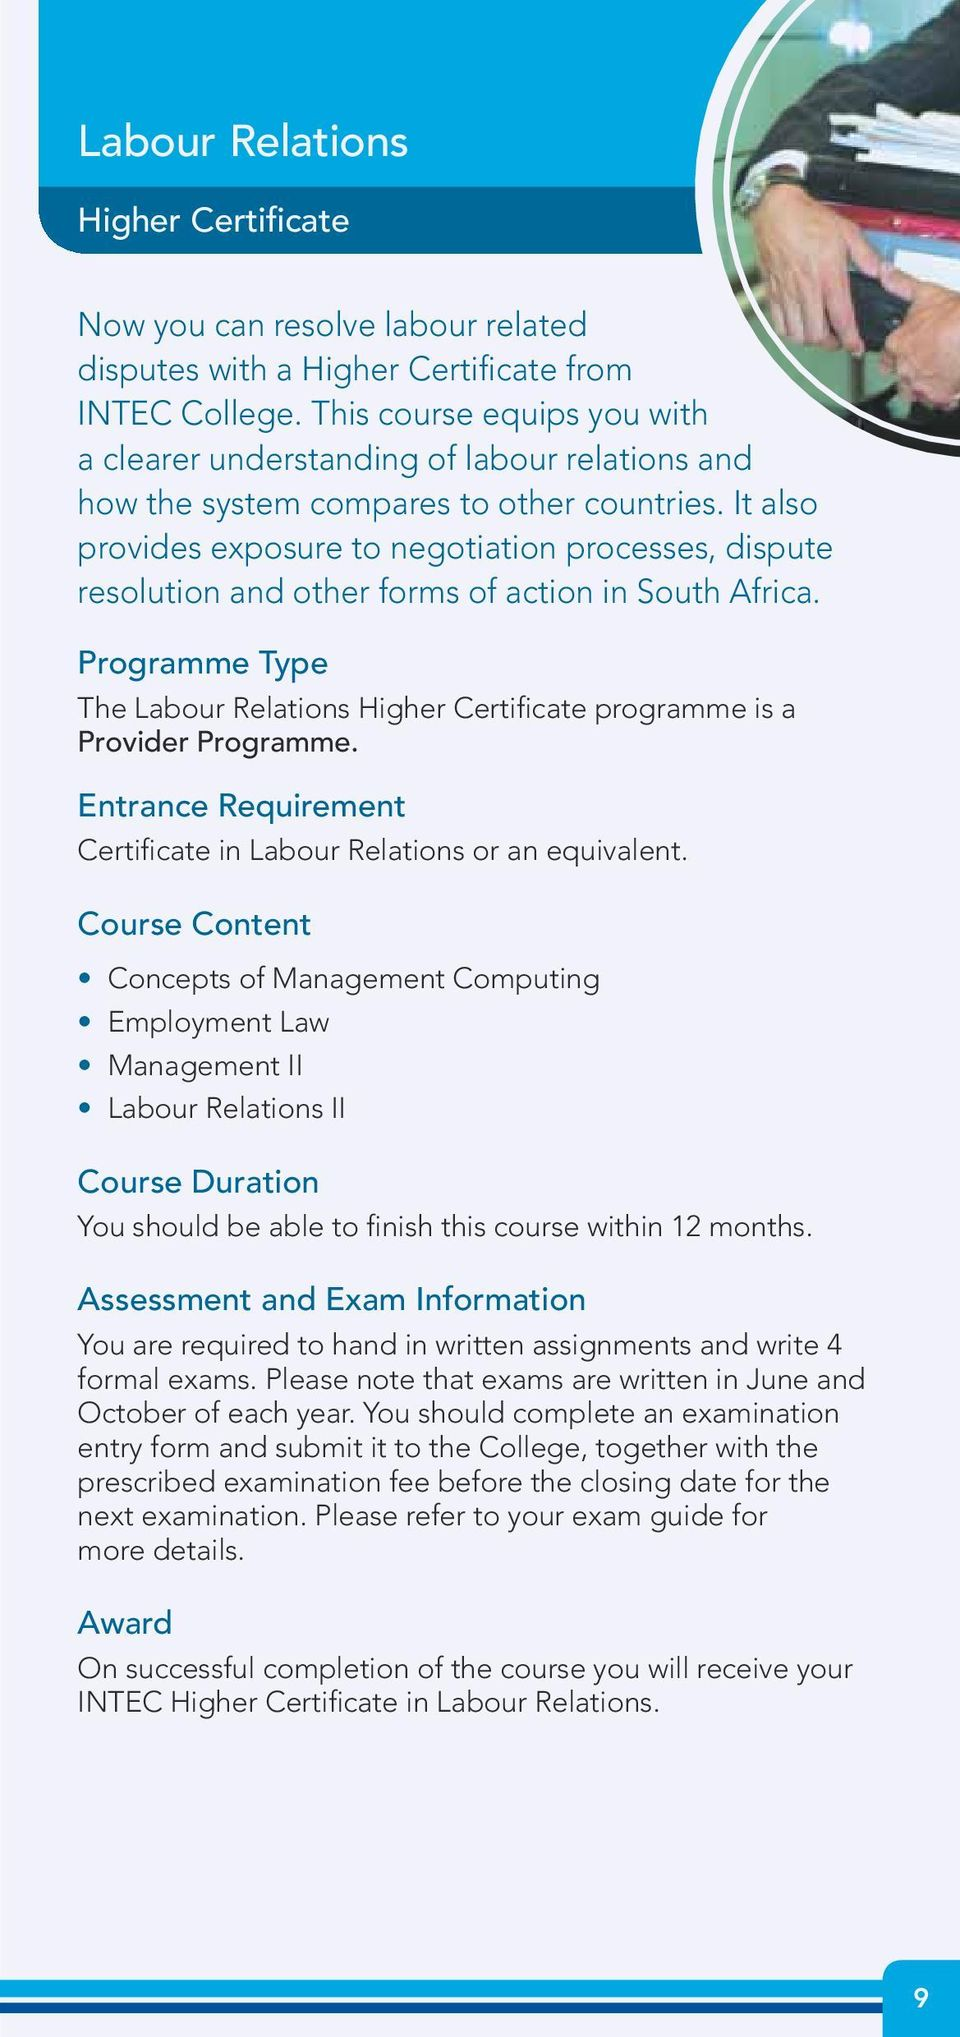 It also provides exposure to negotiation processes, dispute resolution and other forms of action in South Africa. The Labour Relations Higher Certificate programme is a Provider Programme.